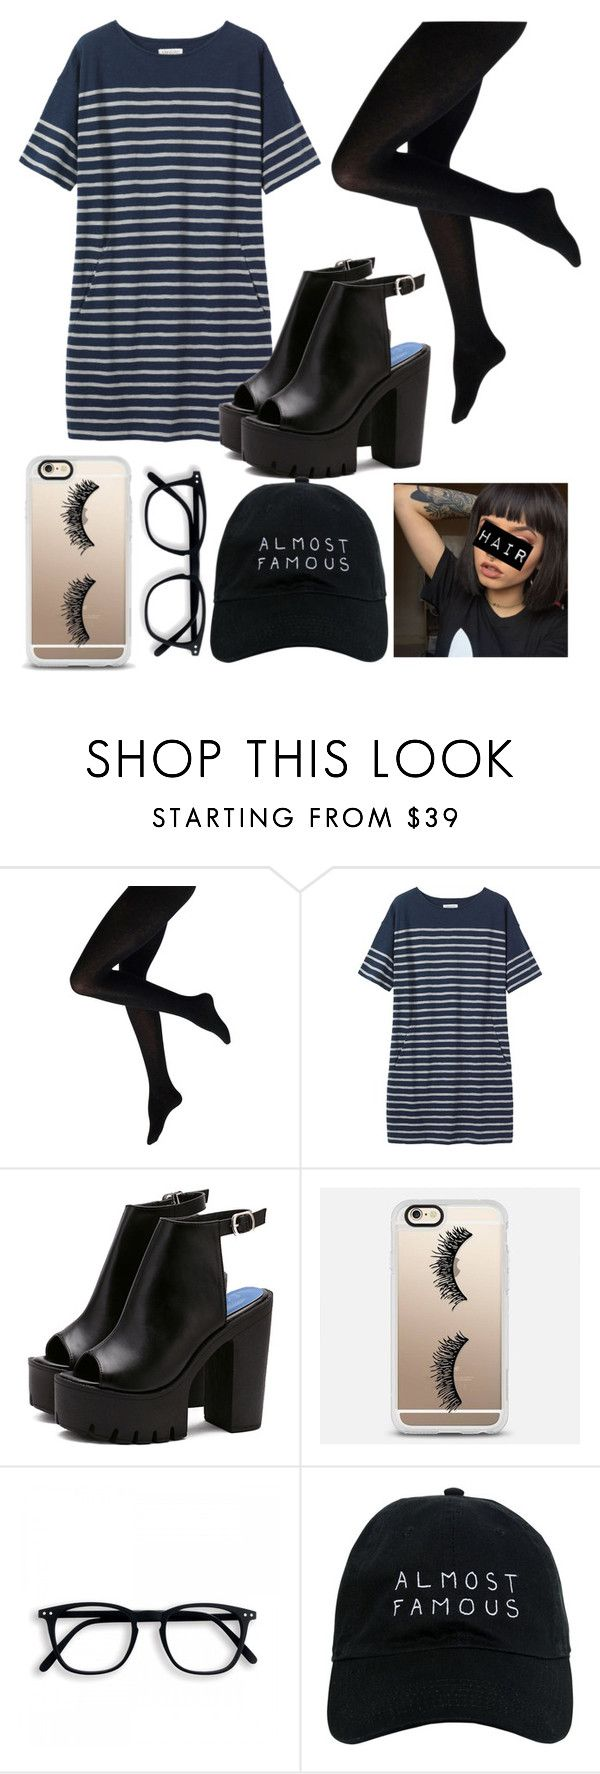 """Tumblr Girl: Strips"" by mollyglueck ❤ liked on Polyvore featuring Toast, Casetify, Nasaseasons, StreetStyle, outfit and polyvorecontest"